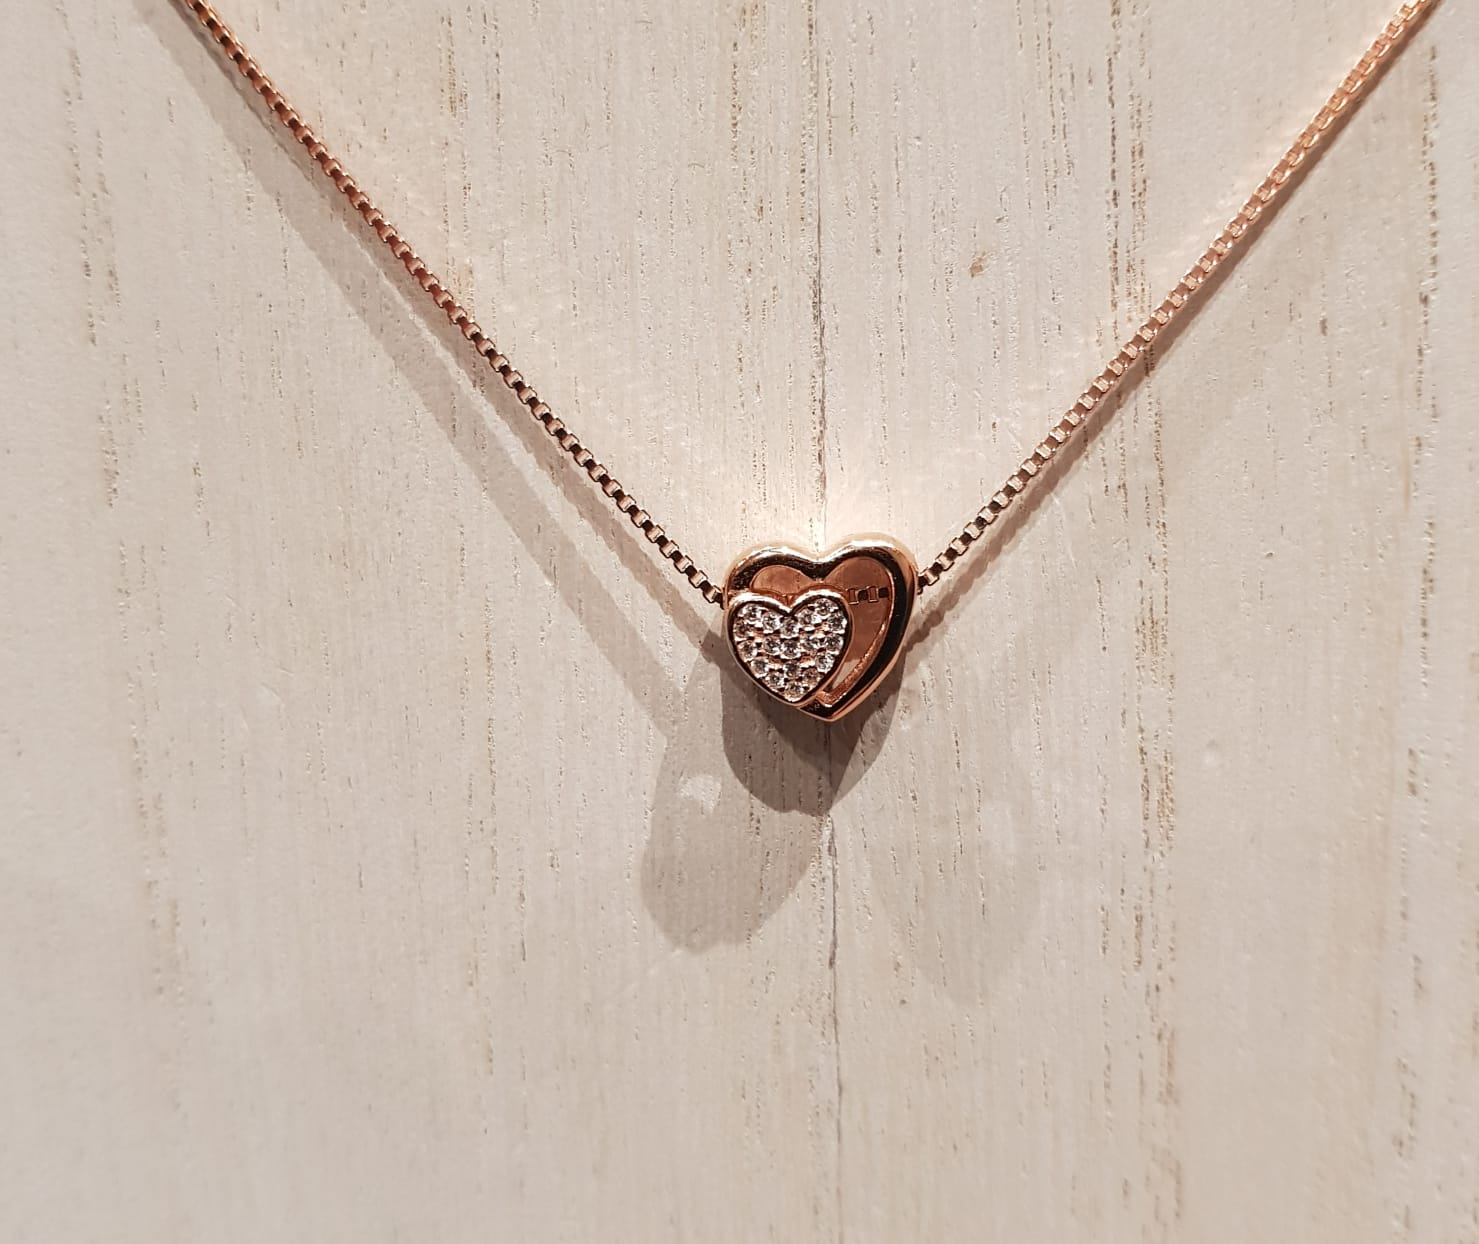 S925 Sterling Silver Heart To Heart  Necklace For Her (18K Rose Gold Plated)